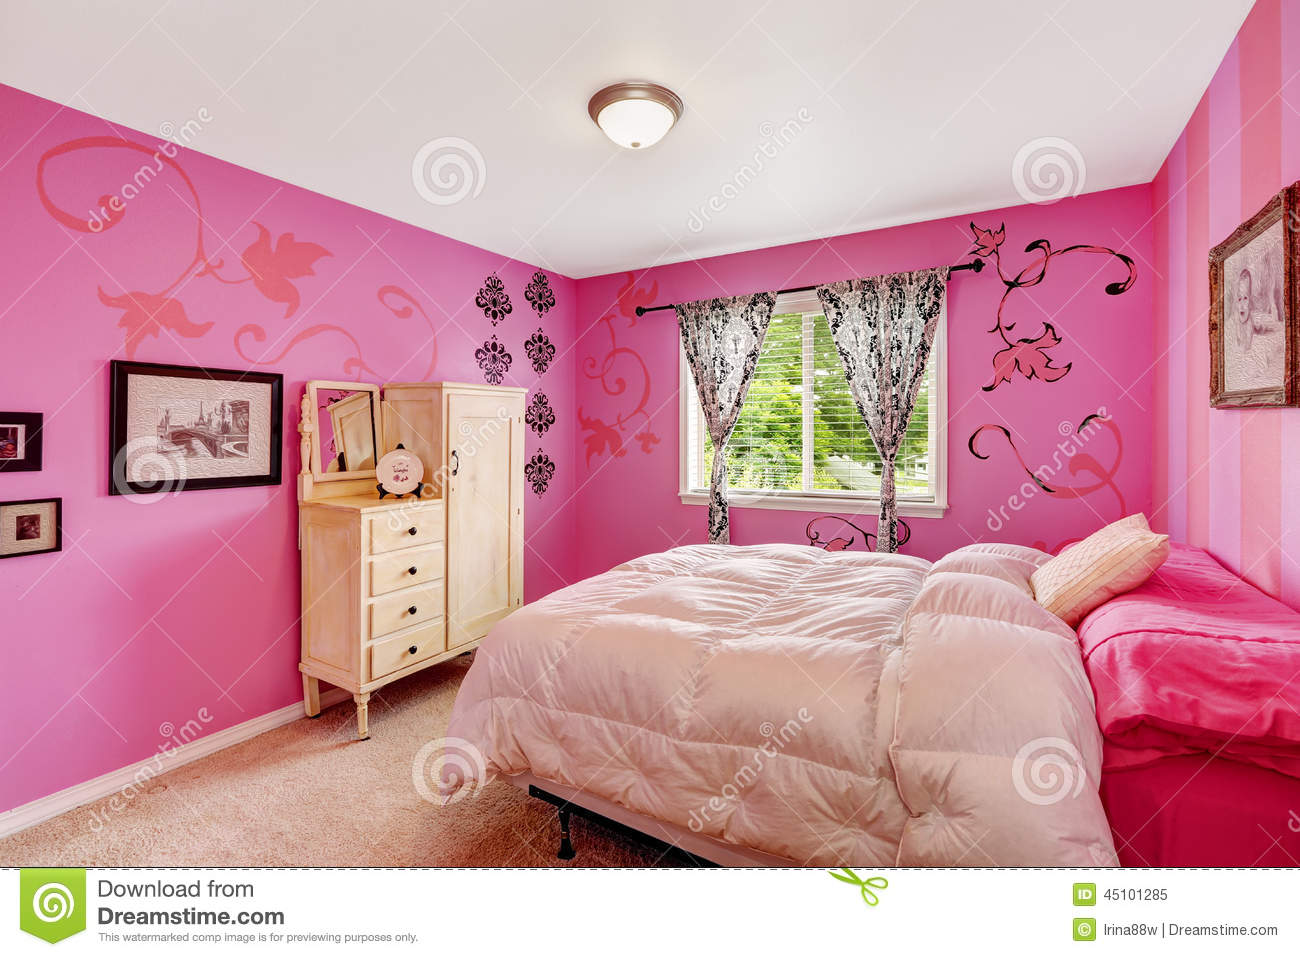 Girl bedroom interior in bright pink color stock image - Couleur de chambre a coucher ...